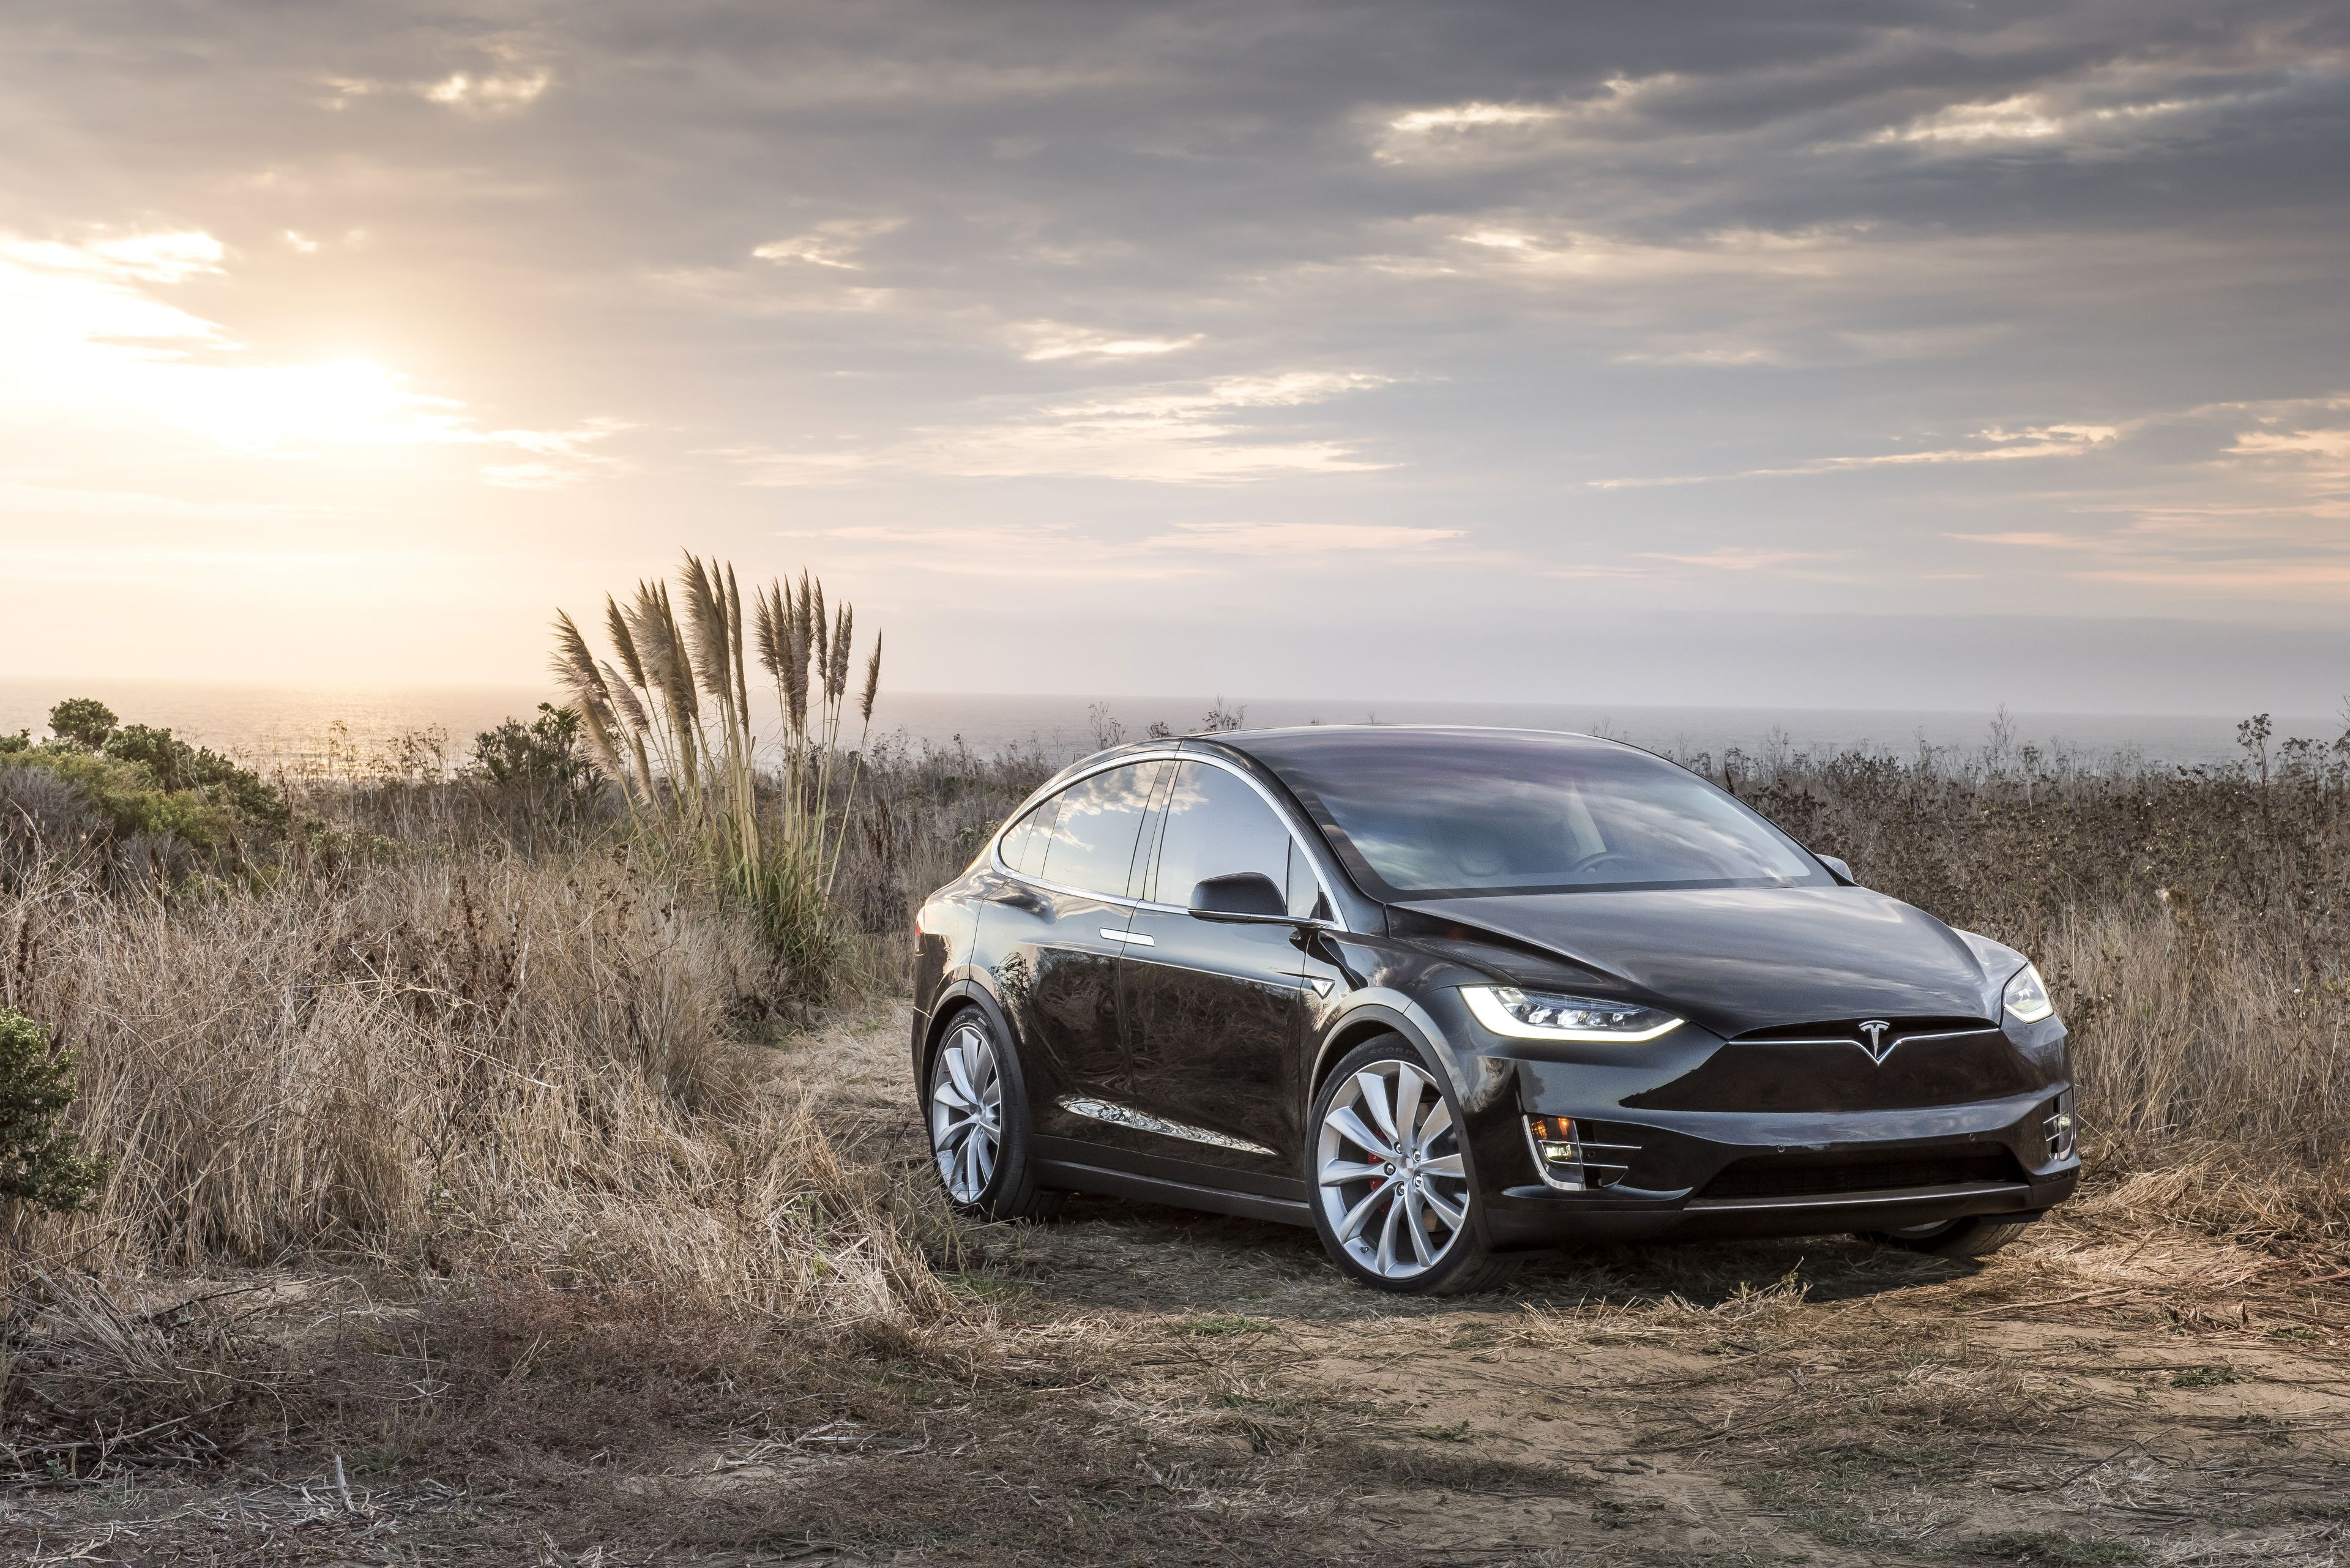 Tesla Model X Wallpapers   Top Tesla Model X Backgrounds 3840x2562